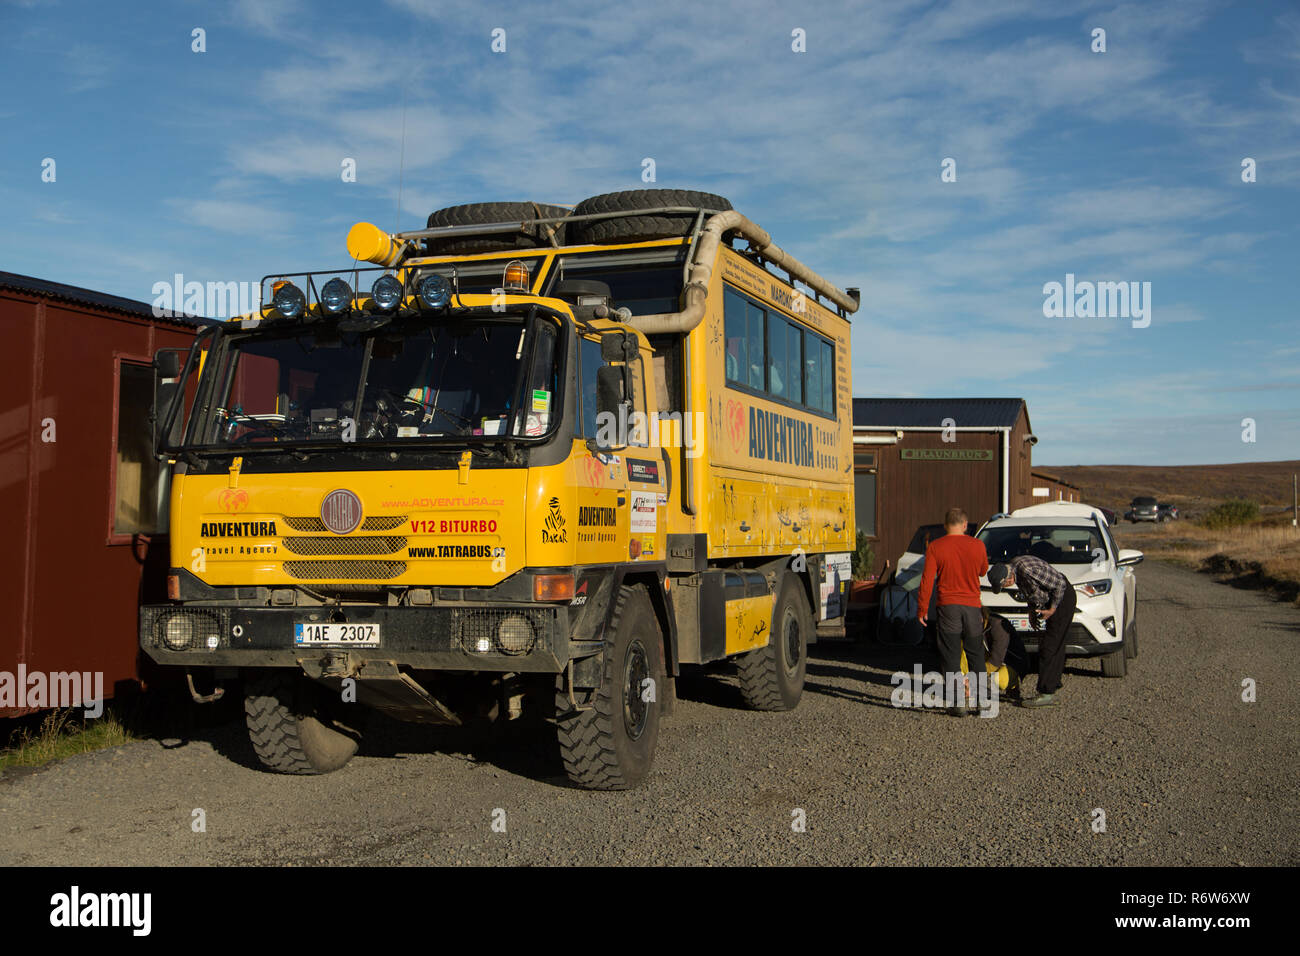 Adventura Travel Agency vehicle parked outside hostel in Lake Myvatn waiting to take tourists on sightseeing tour - Stock Image